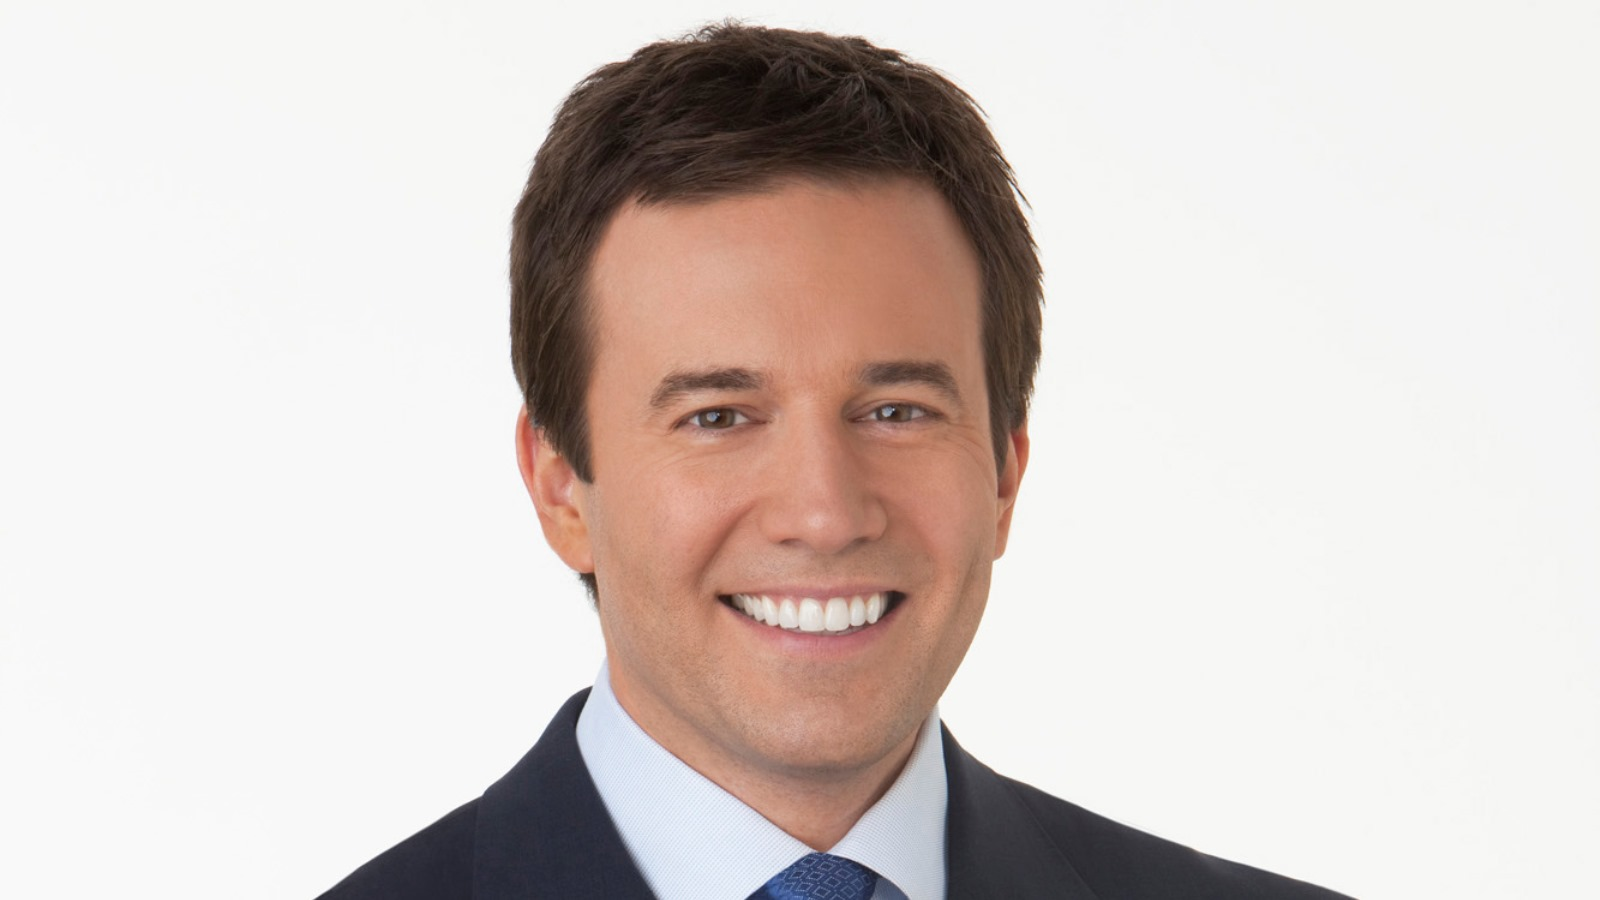 Jeff Glor (CBS The Early Show promotional image)